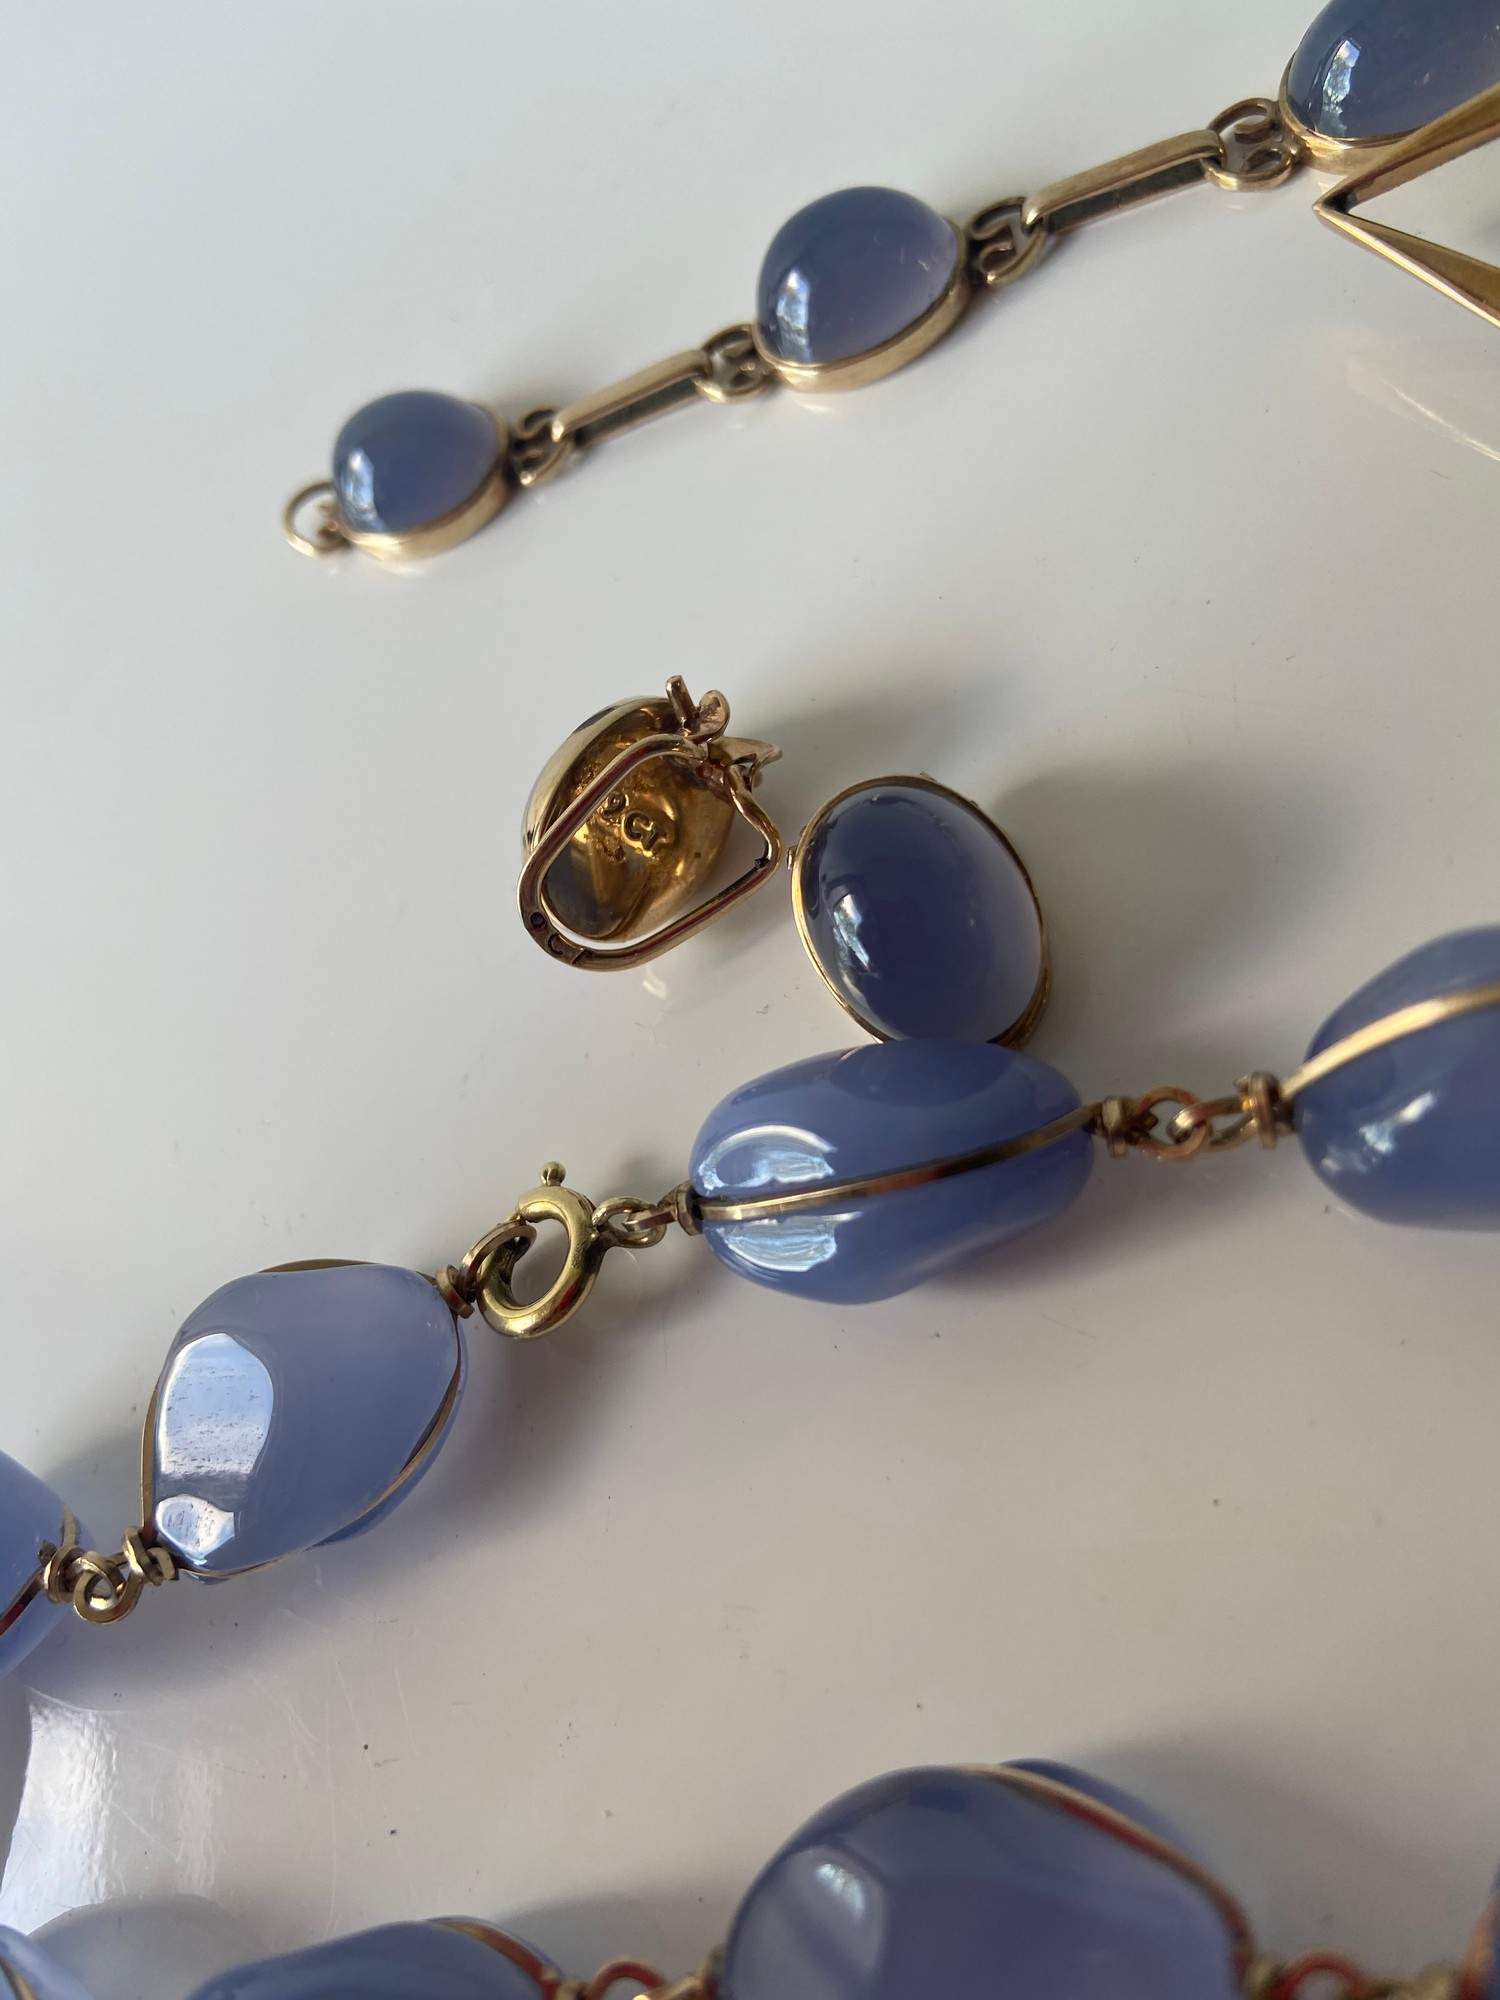 A FIVE PIECE NECKLACE, RING, BROOCH, BRACELET AND EARRING SET. ALL BEAUTIFULLY SET WITH CHALCEDONY - Image 9 of 13